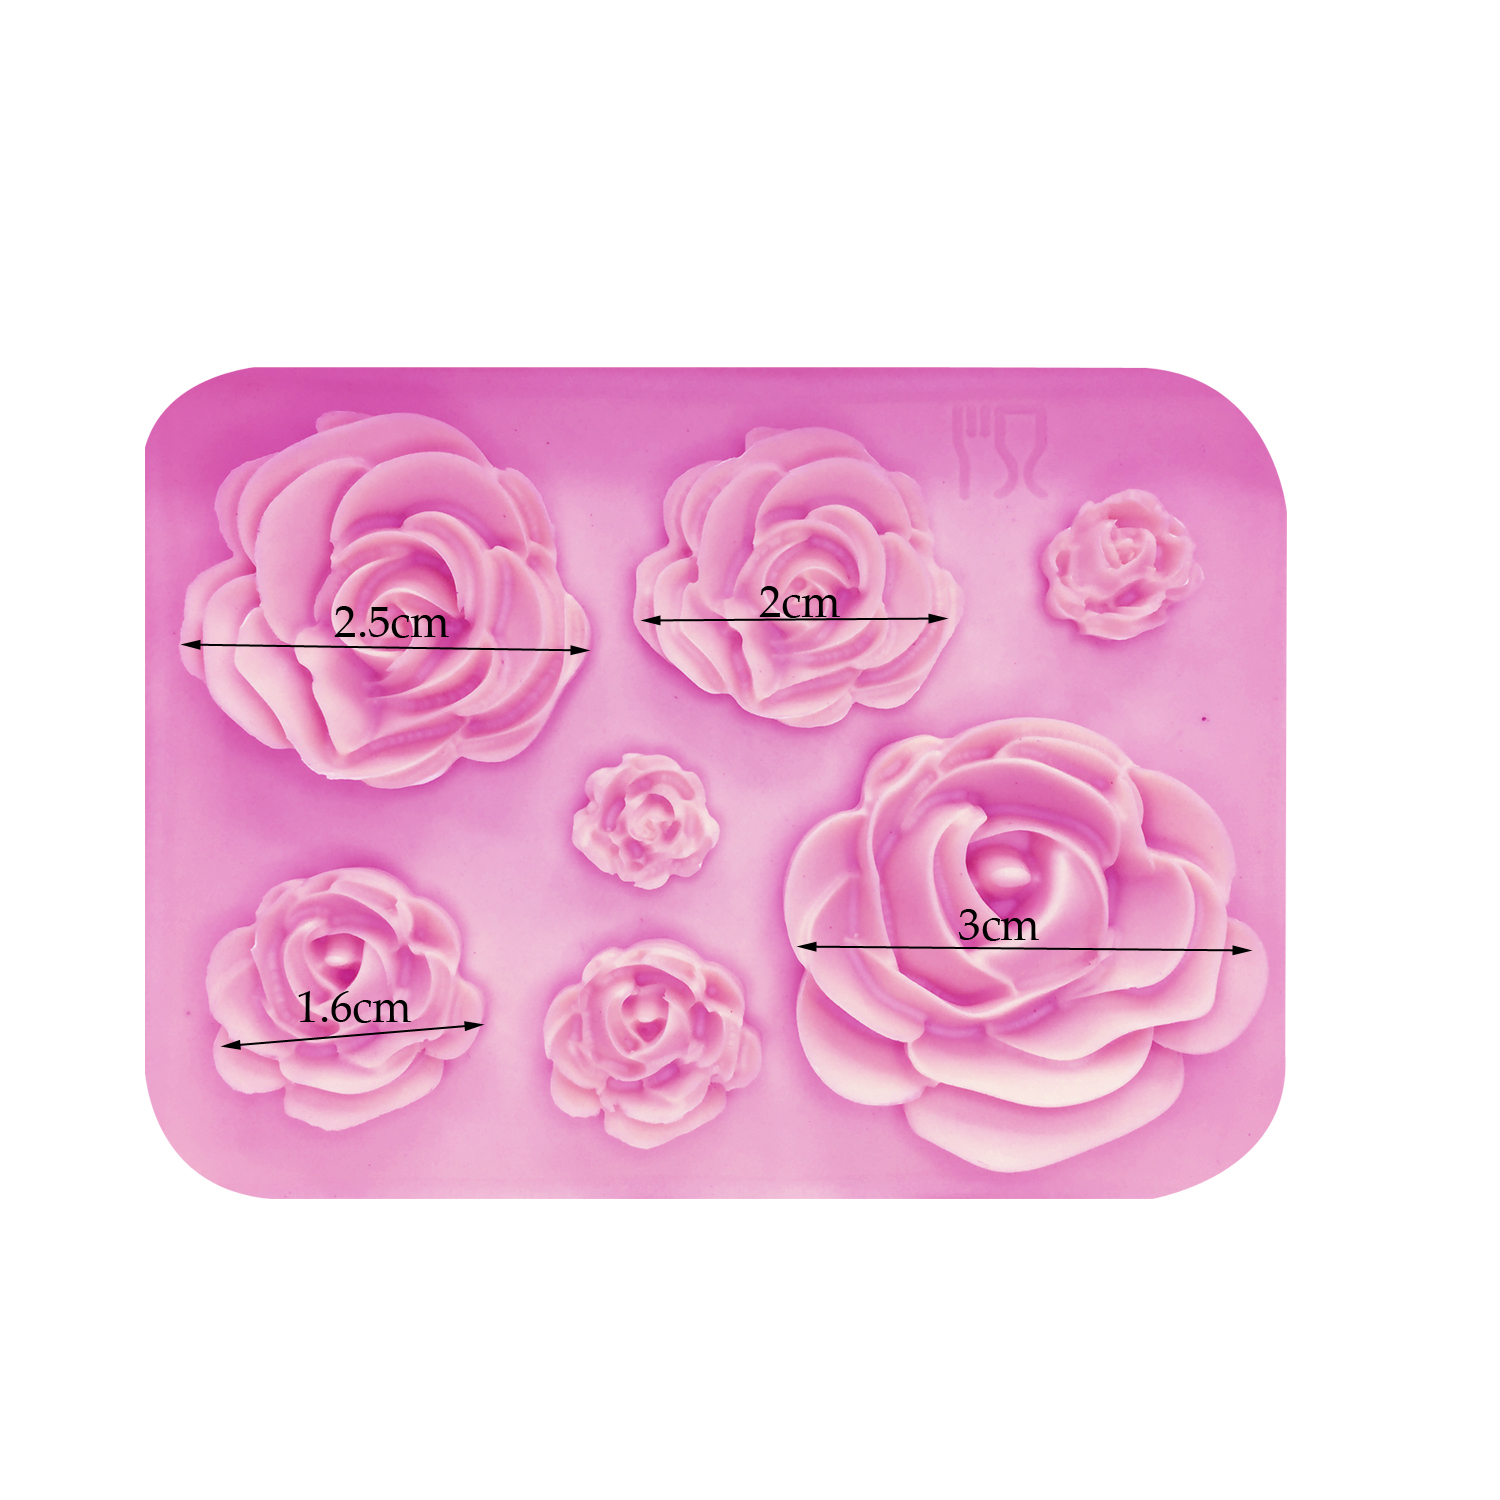 Rose Flowers Silicone Fondant Mold 3